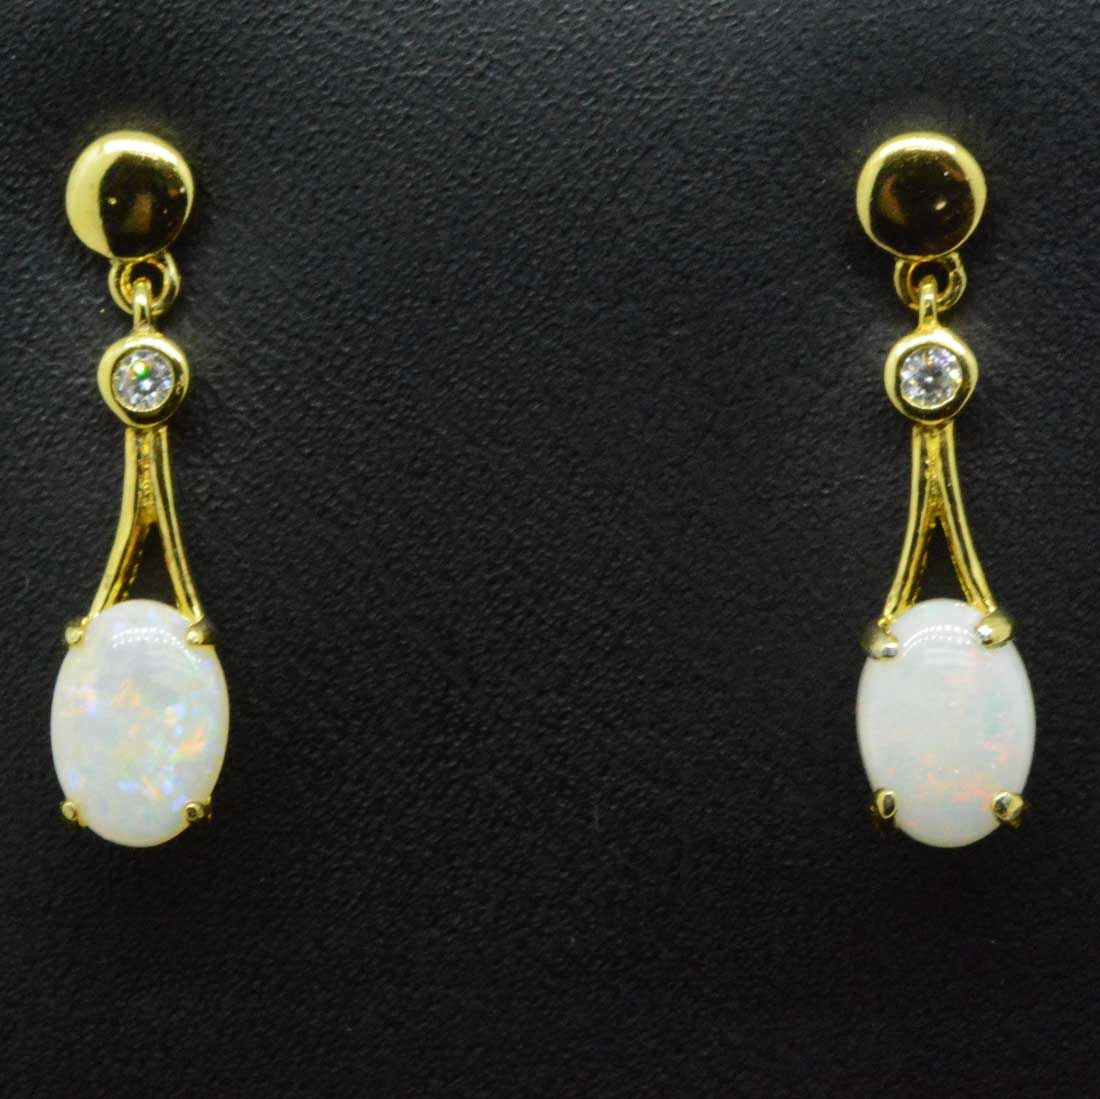 Oval shaped gold plated solid opal earrings